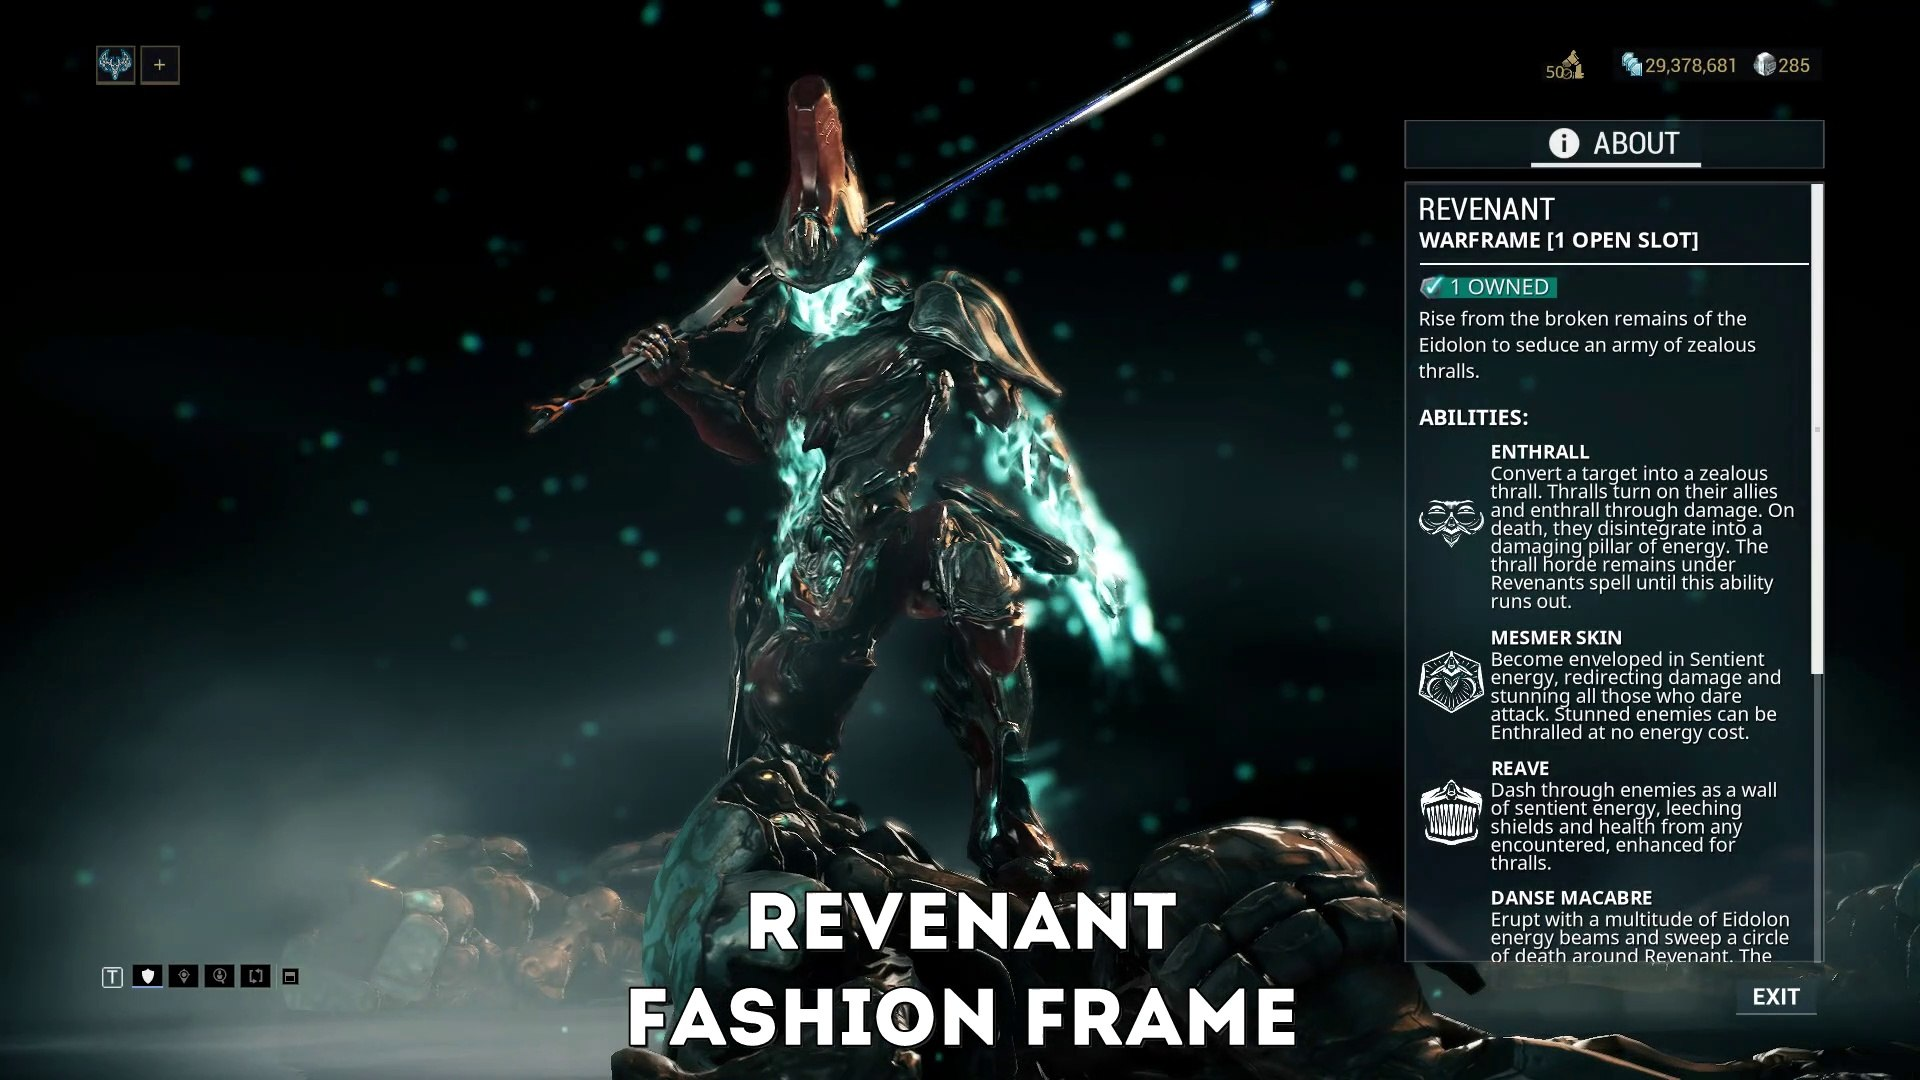 Warframe Revenant Fashion Frame The True End Game Video Dailymotion Digital extremes have released the new revenant warframe into the game. warframe revenant fashion frame the true end game